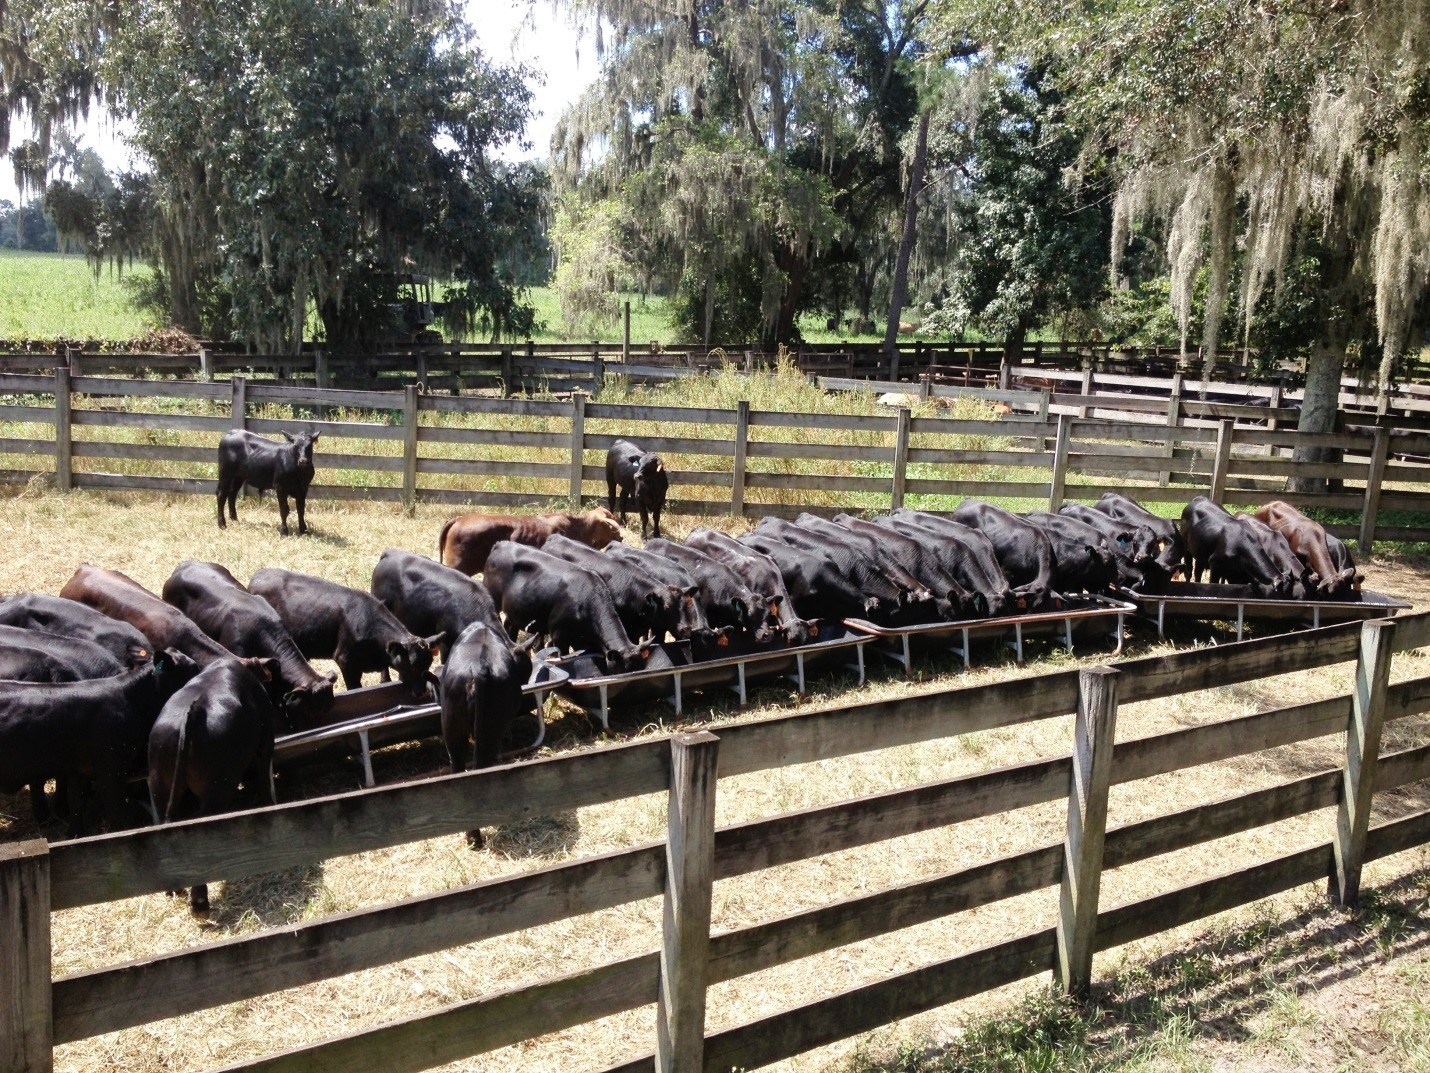 Calves after weaning can undergo a considerable amount of shrink in bodyweight as a result of stress and diet changes. (Alachua, Florida)